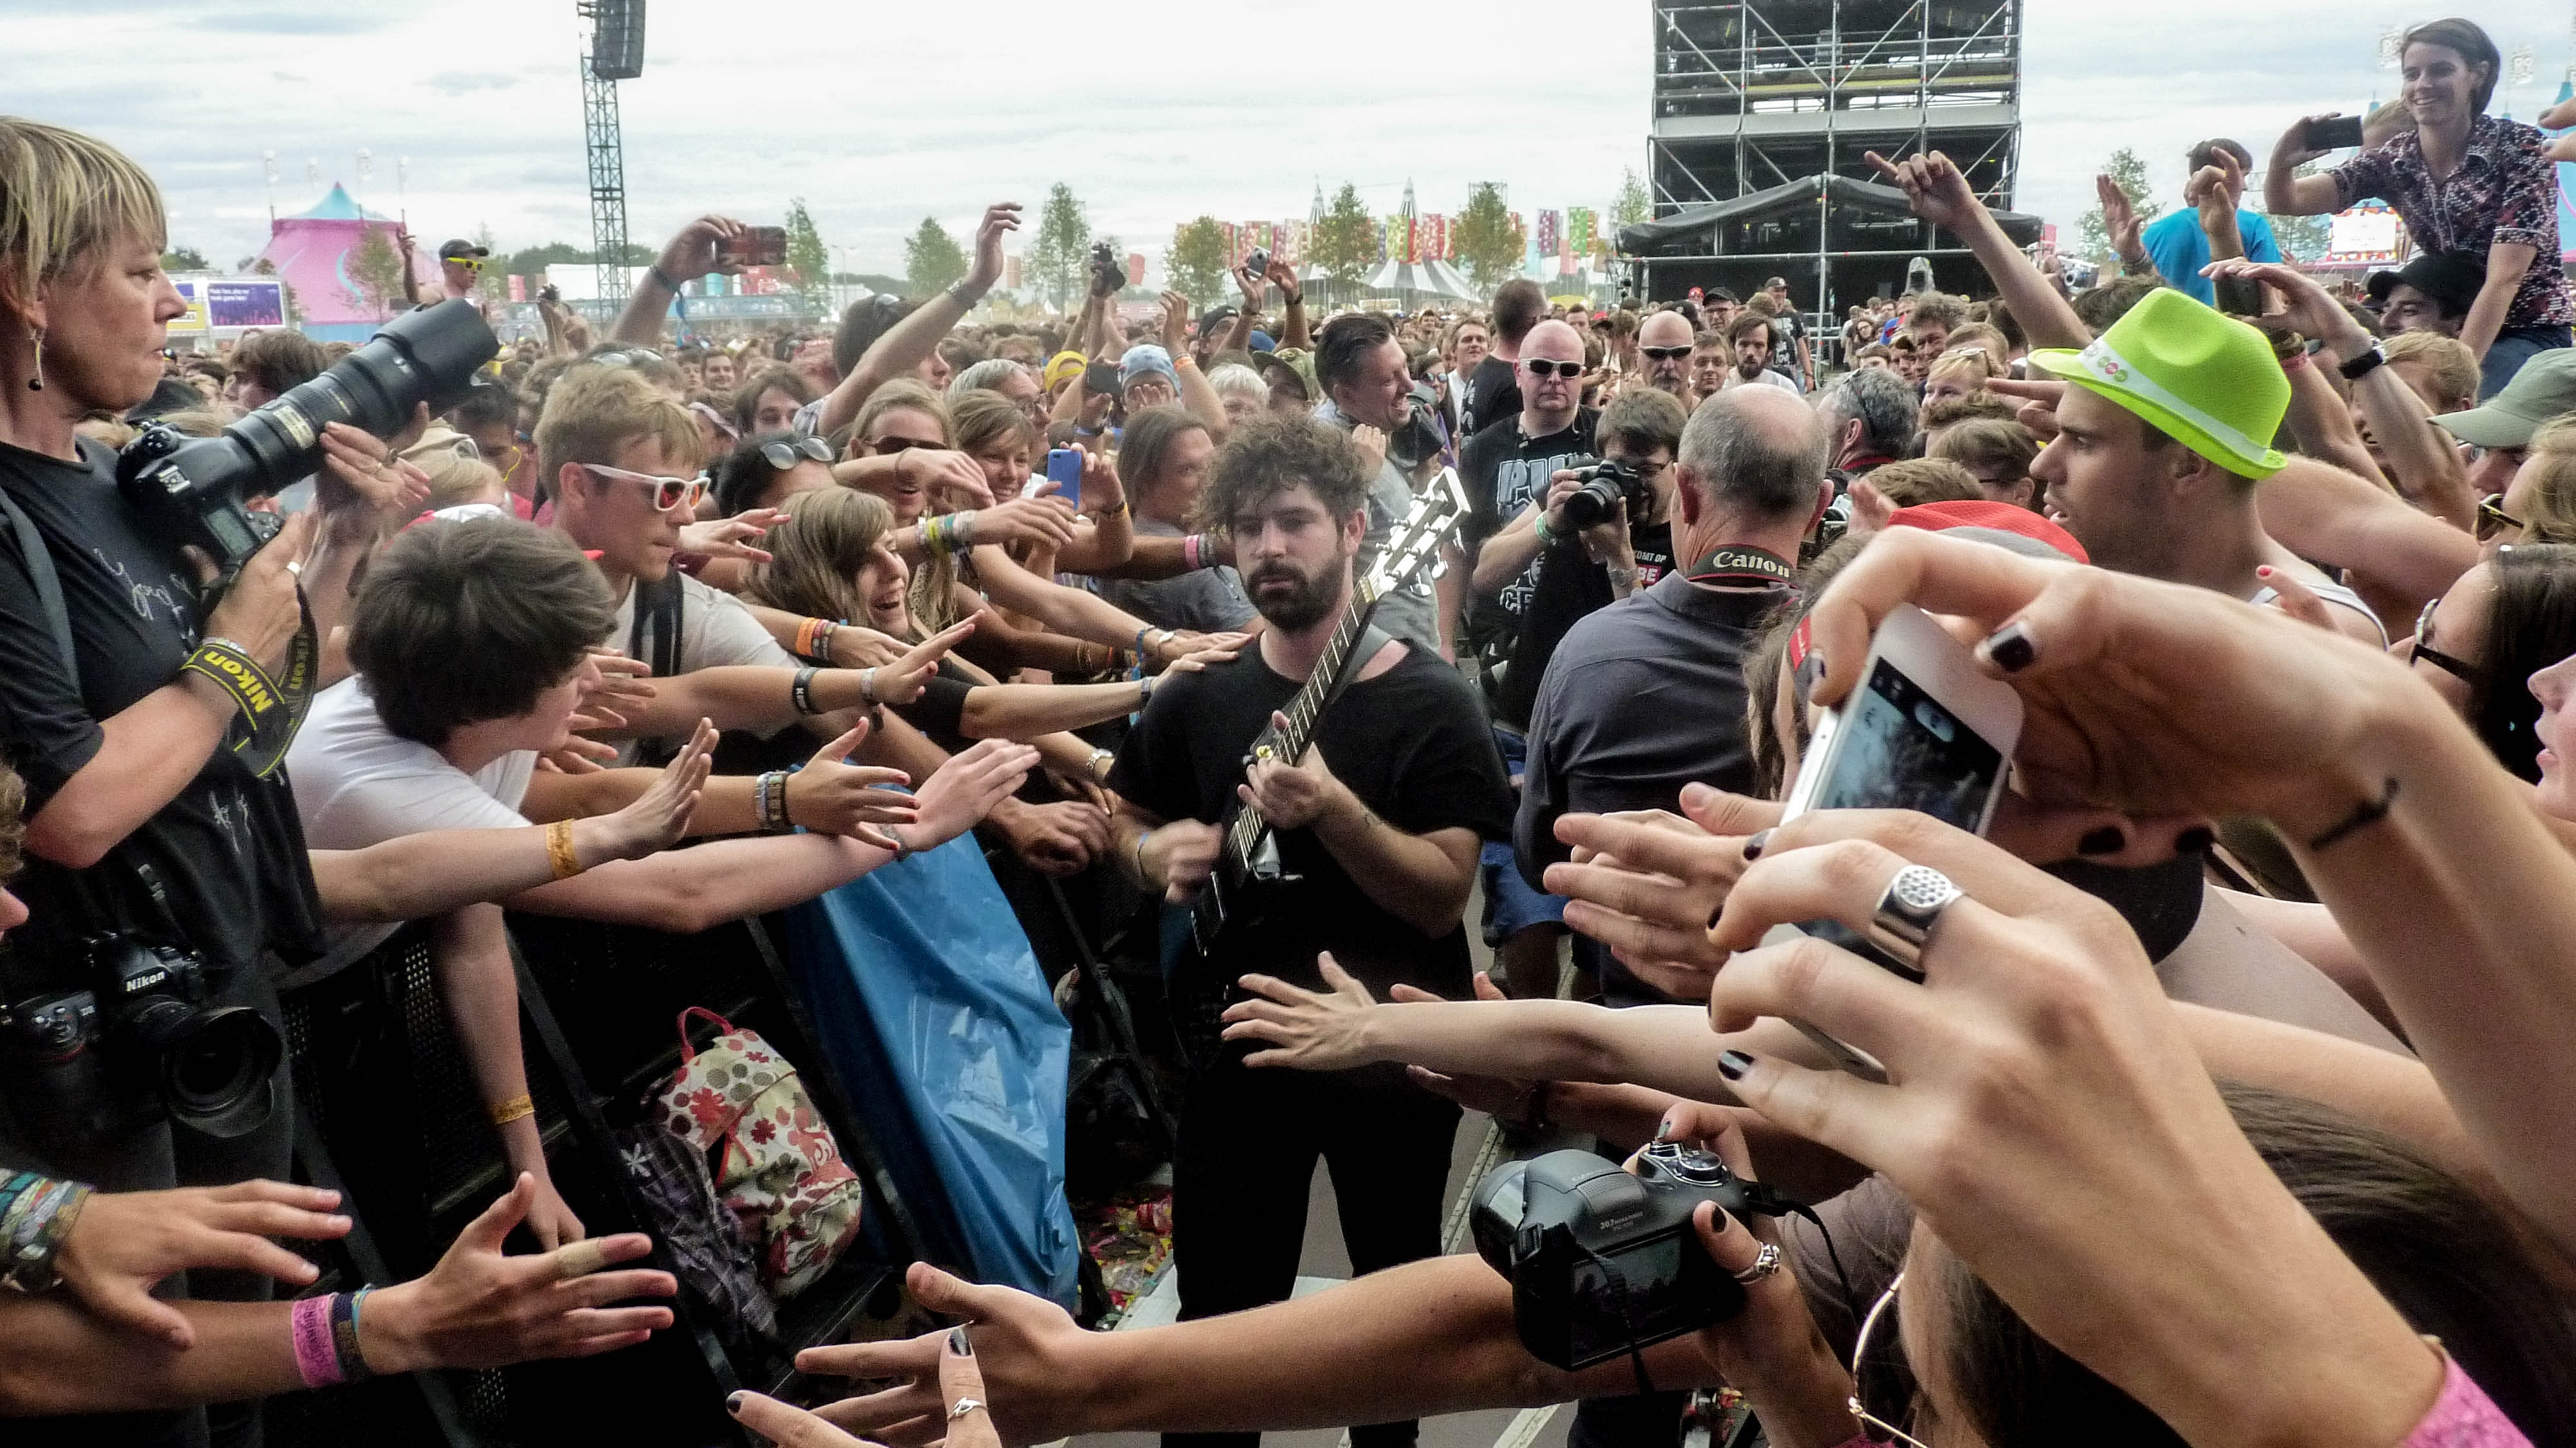 Man in Black Crew Neck T Shirt and Pants Playing Guitar Surrounded by Crowd, Audience, Band, Concert, Crowd, HQ Photo